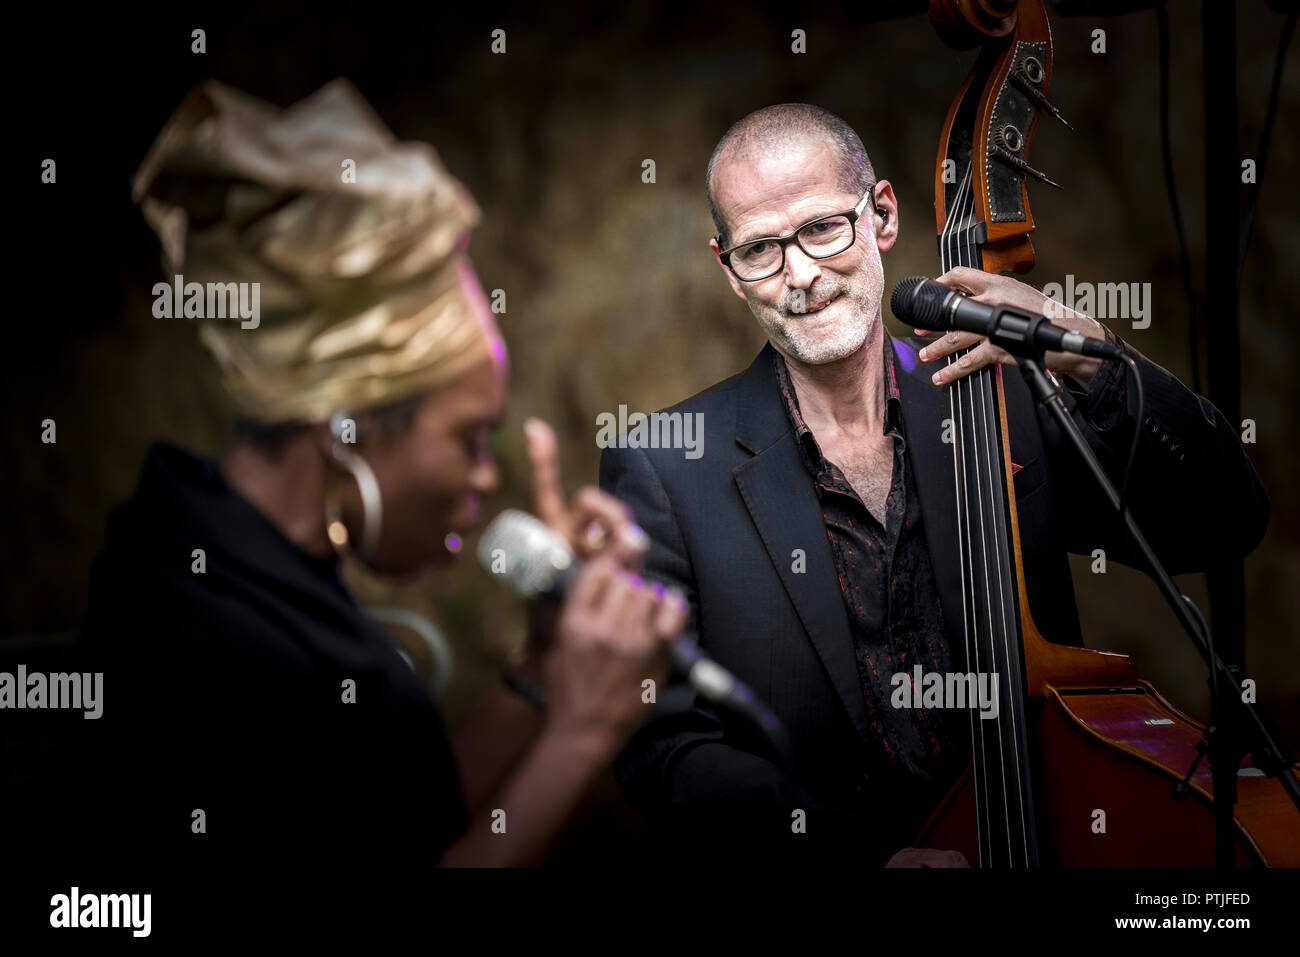 Yan Speake double bassist and Ley Adewole lead vocalist of The Grace Notes performing at Trebah Garden amphitheatre in Cornwall. - Stock Image